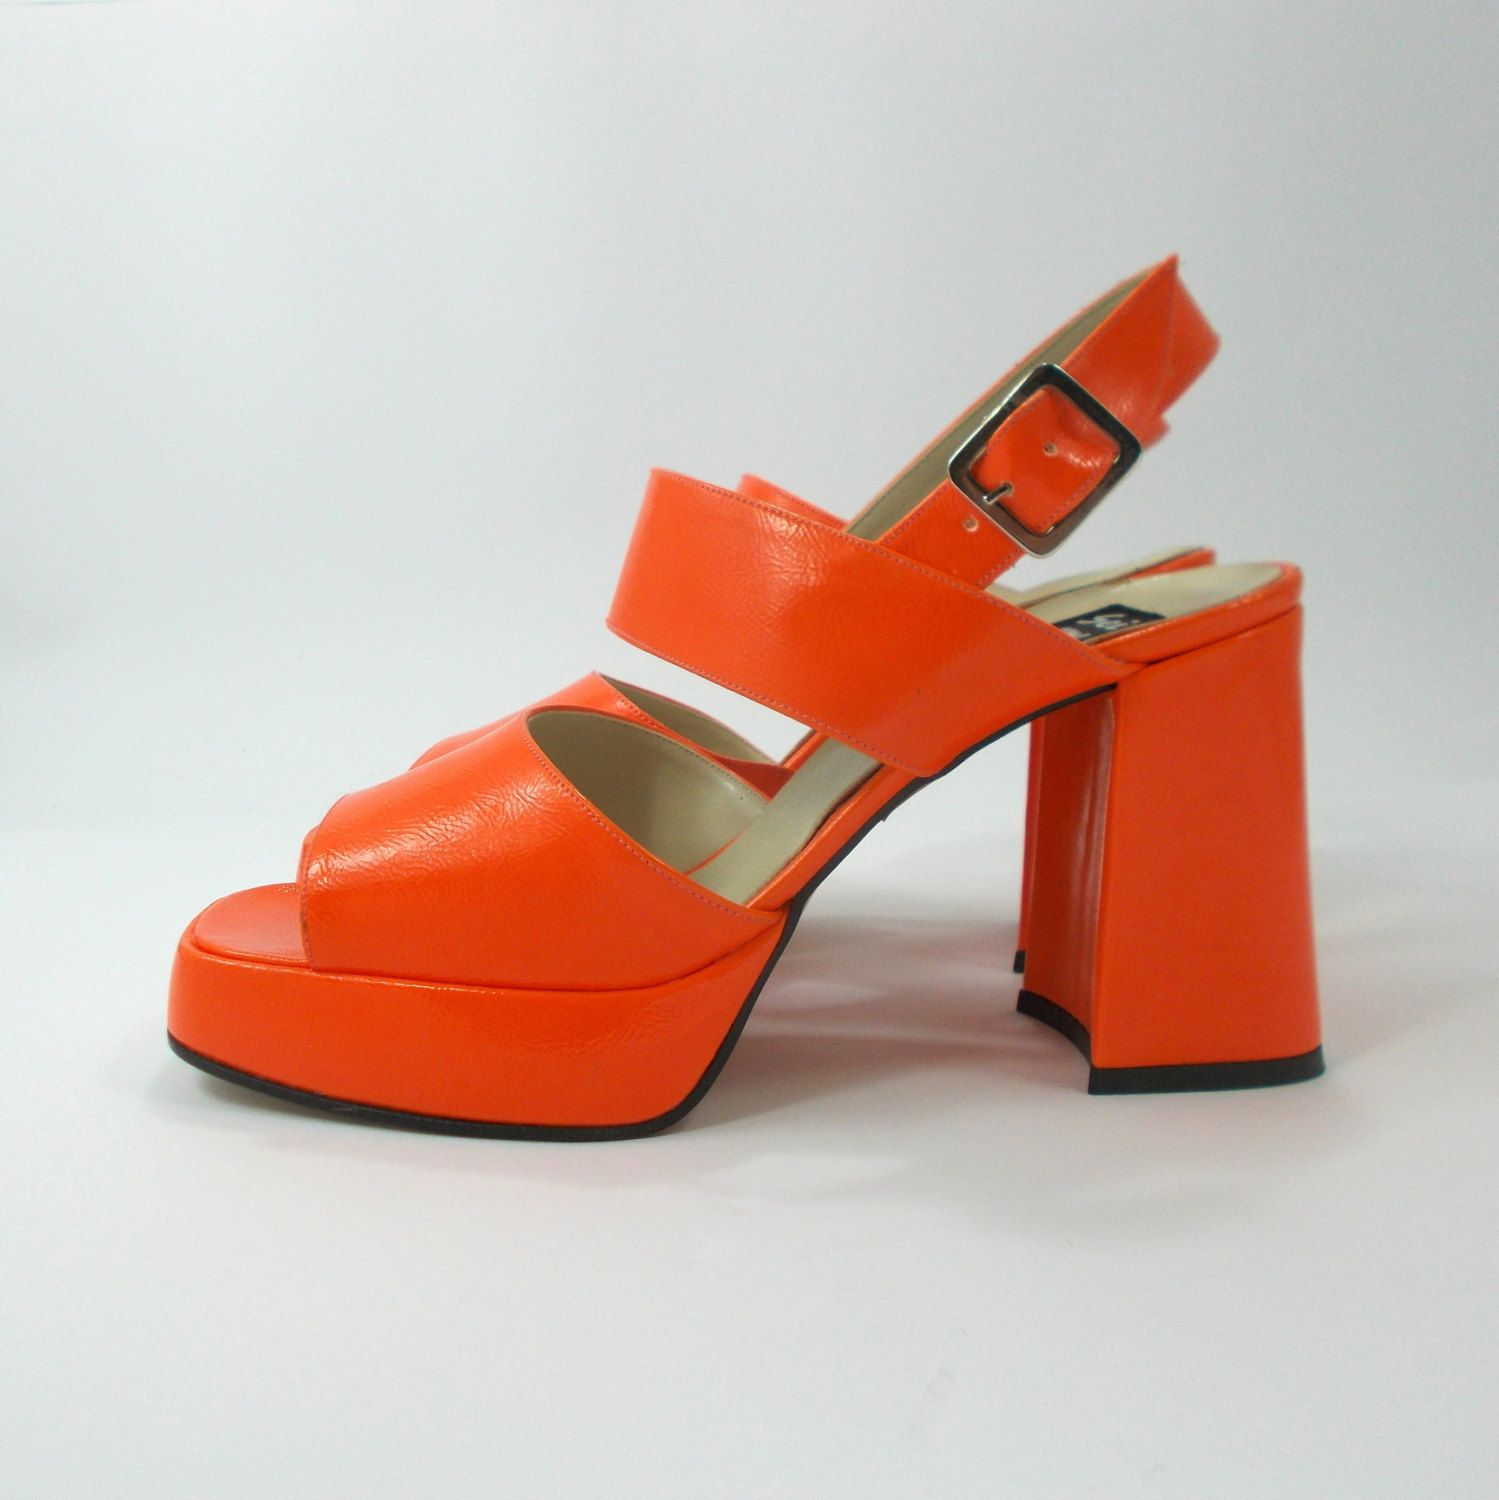 e6150228e99f1 Platform shoes, vintage orange Groovy shoes, 90s retro 70s open toes ...